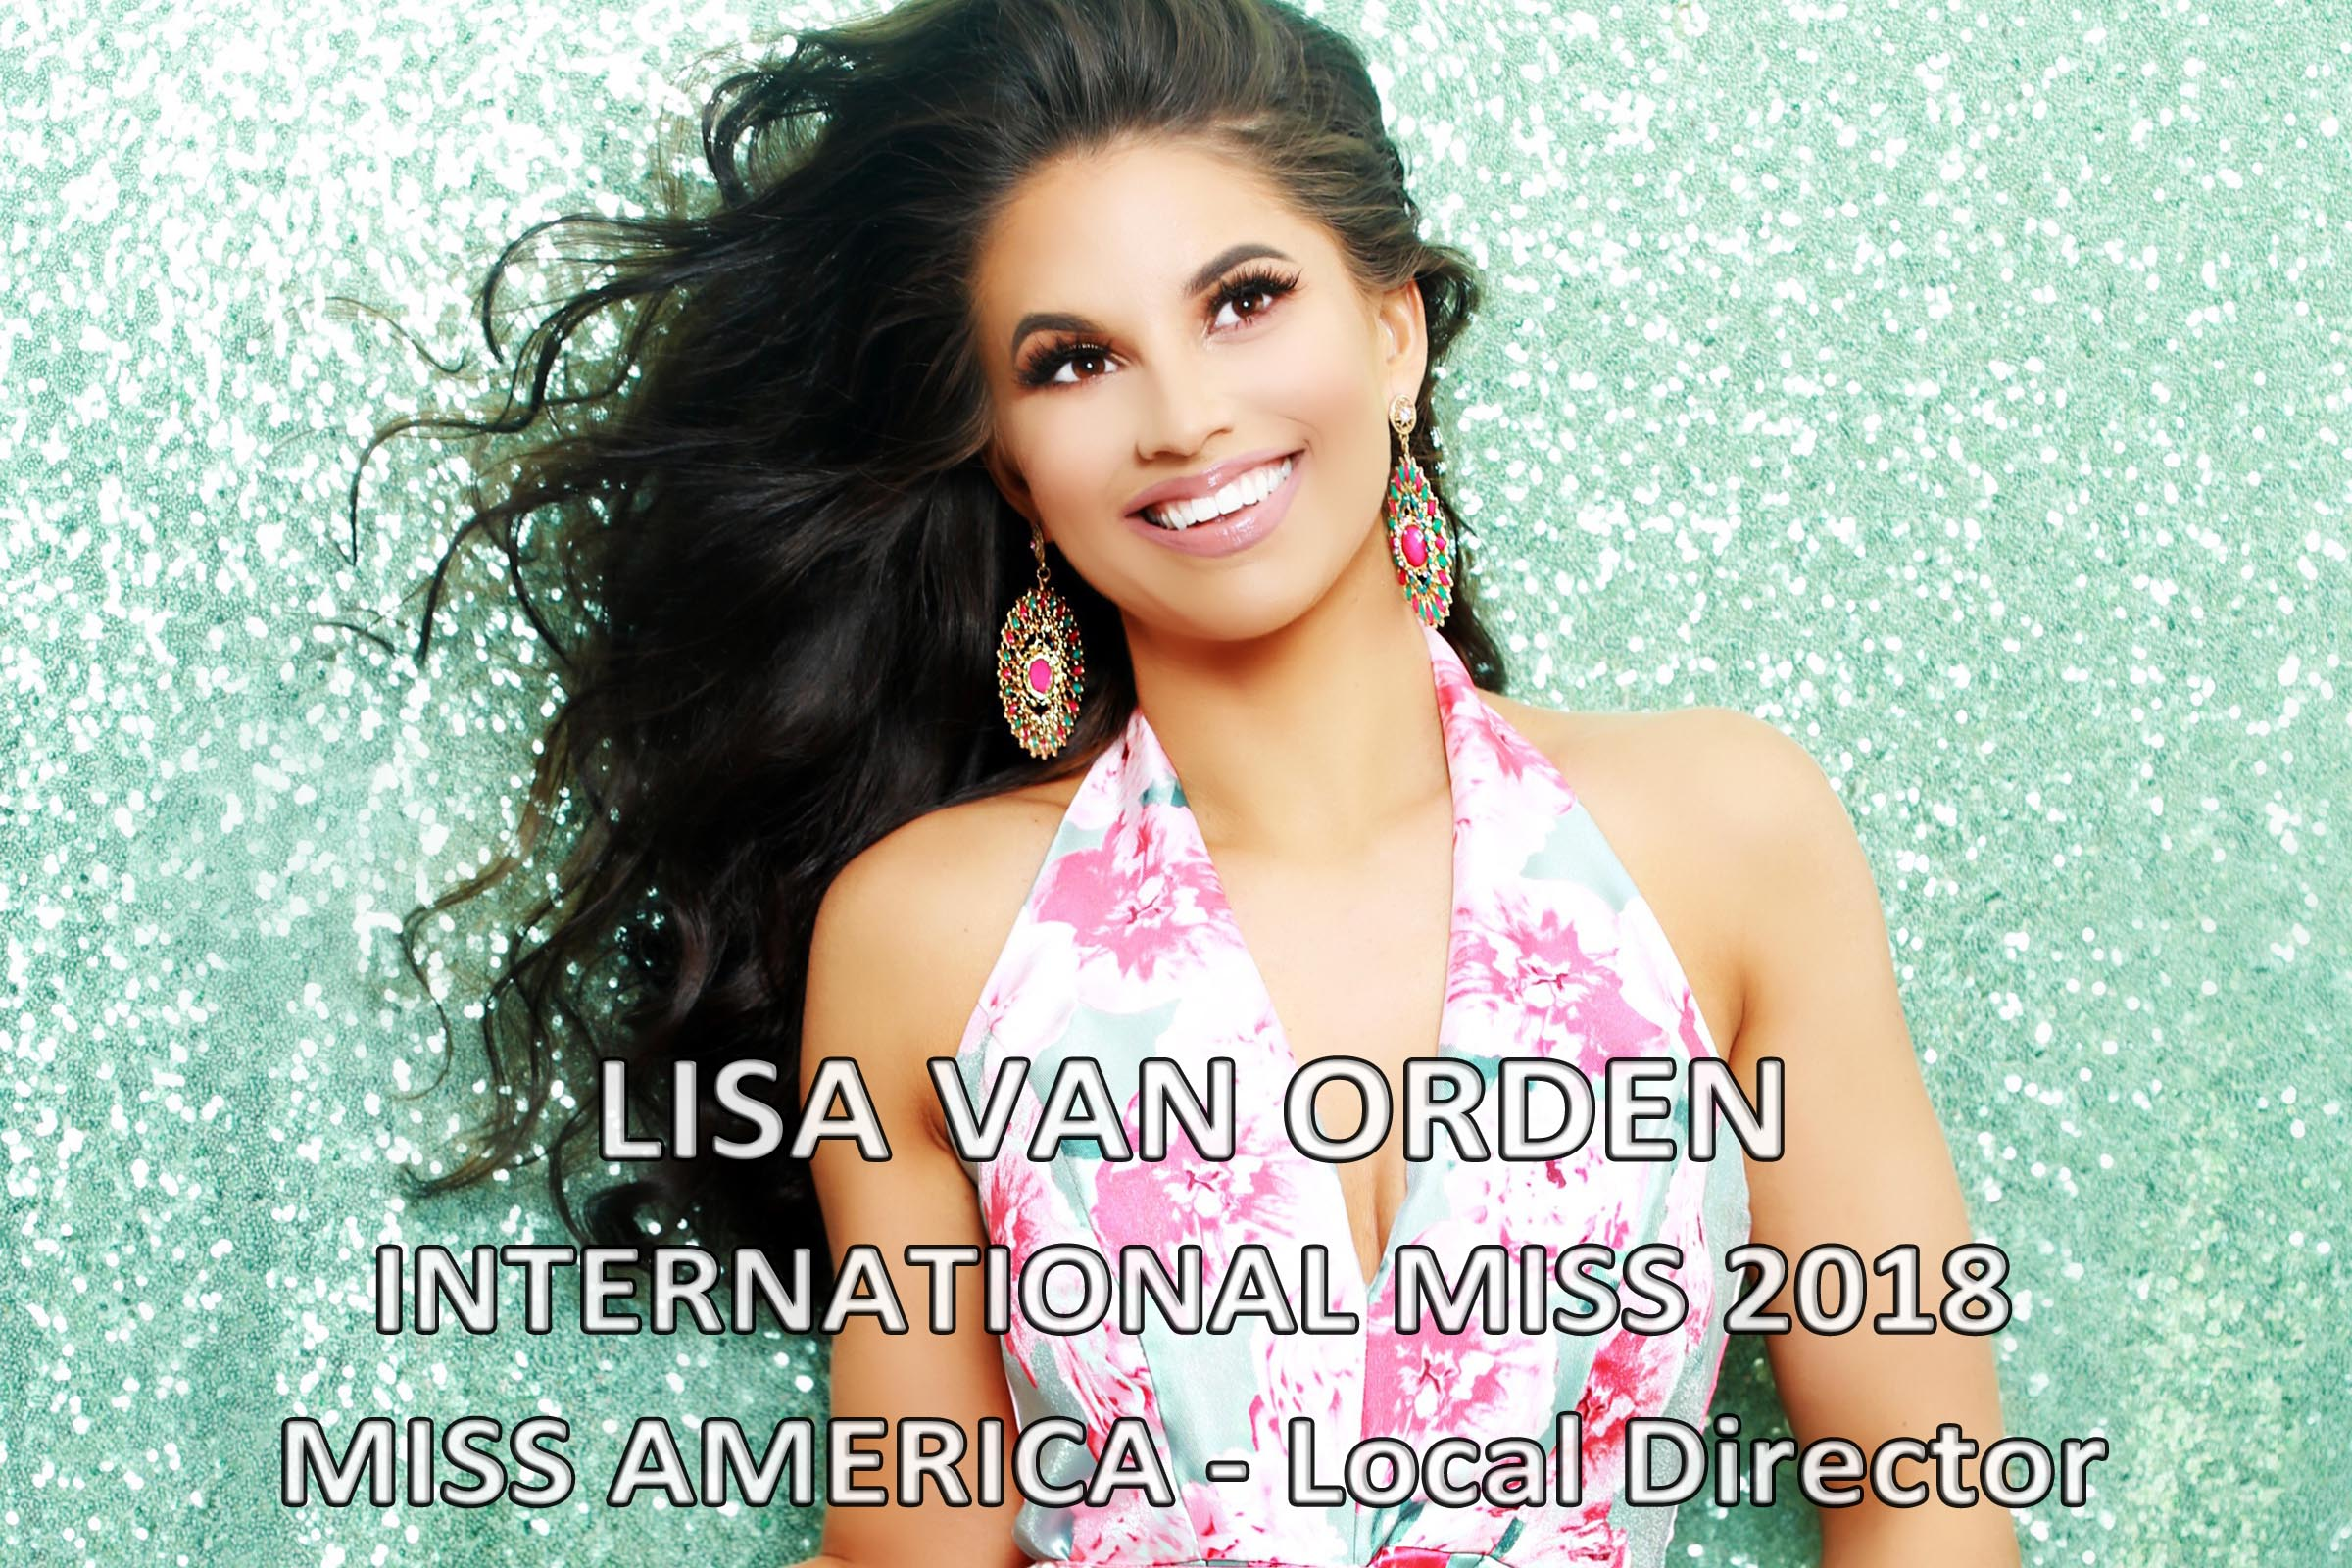 LISA VAN ORDEN SITE